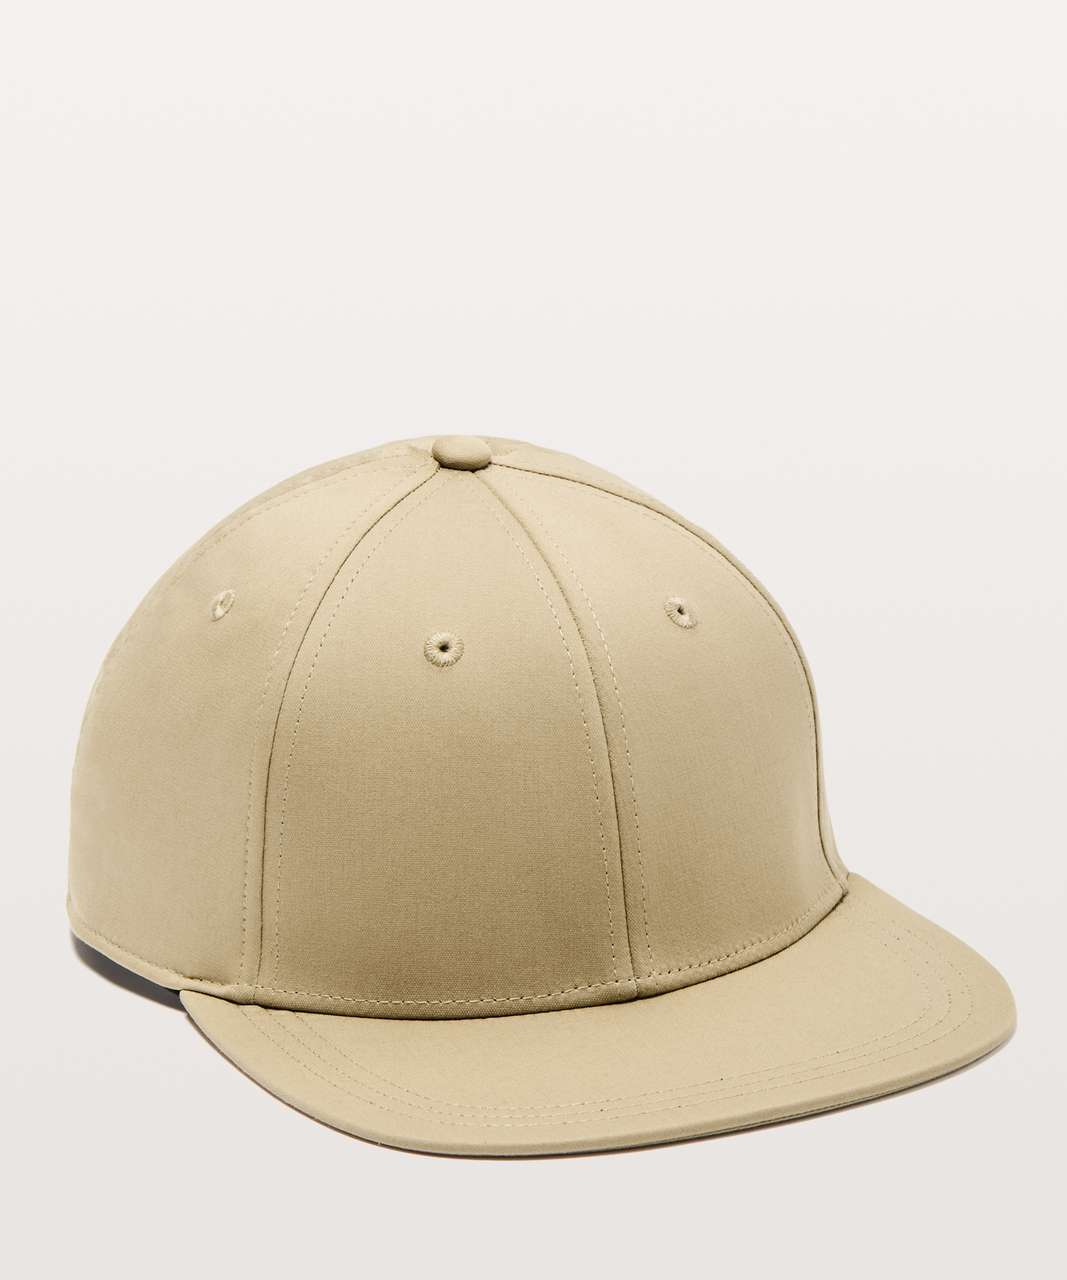 Lululemon On The Fly Ball Cap - Tofino Sand